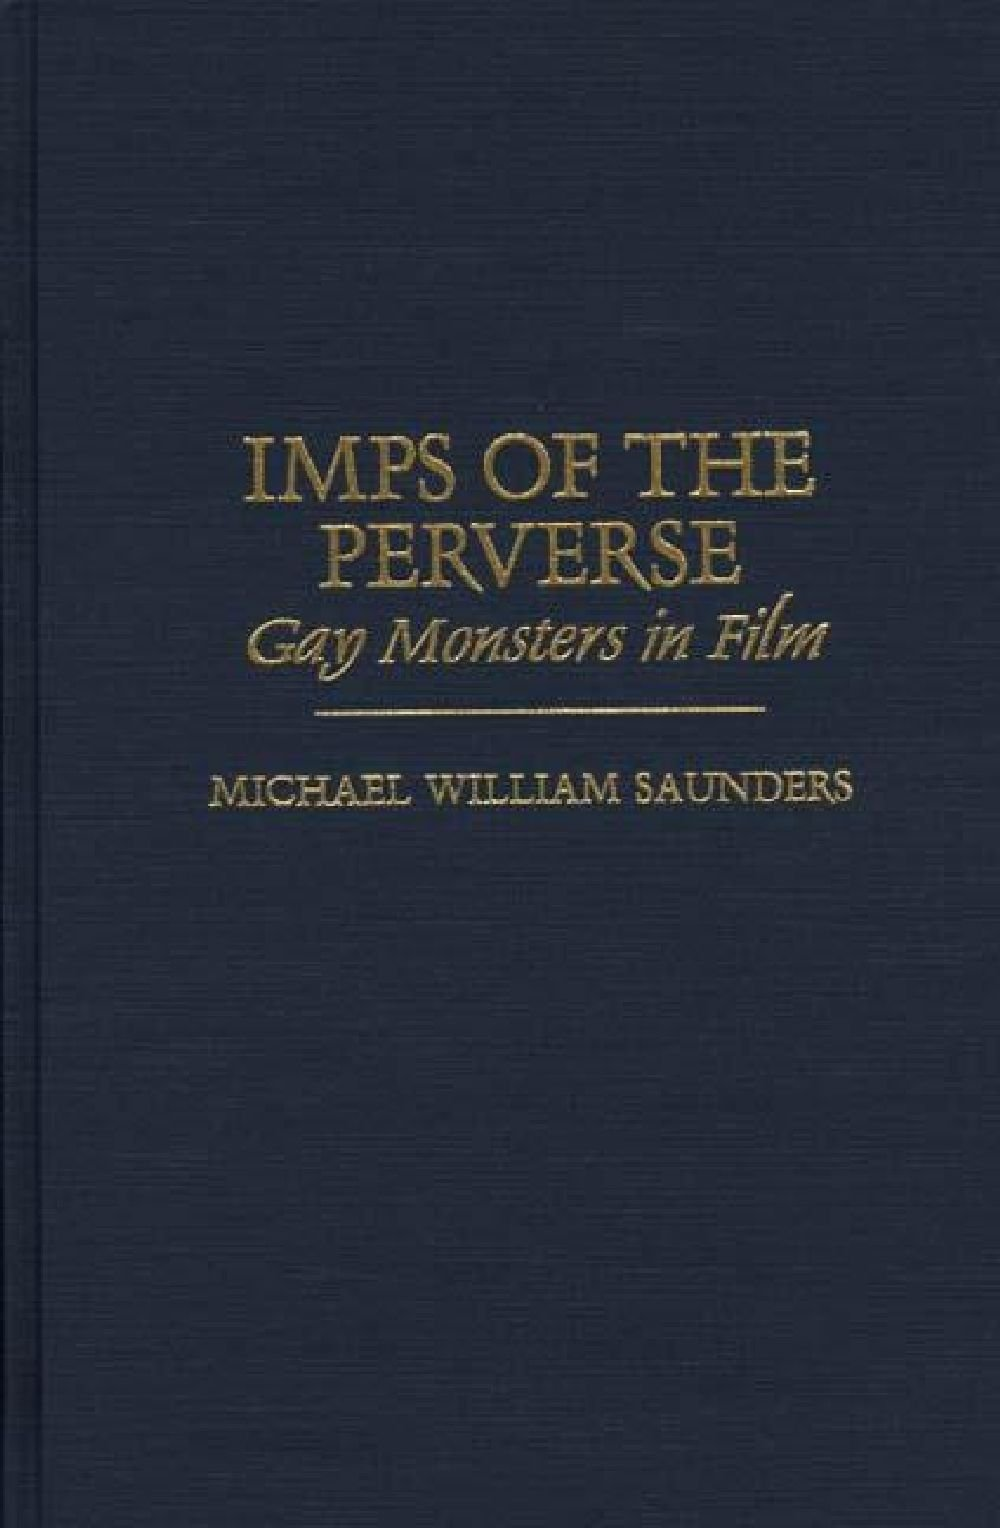 Imps of the Perverse: Gay Monsters in Film by Praeger